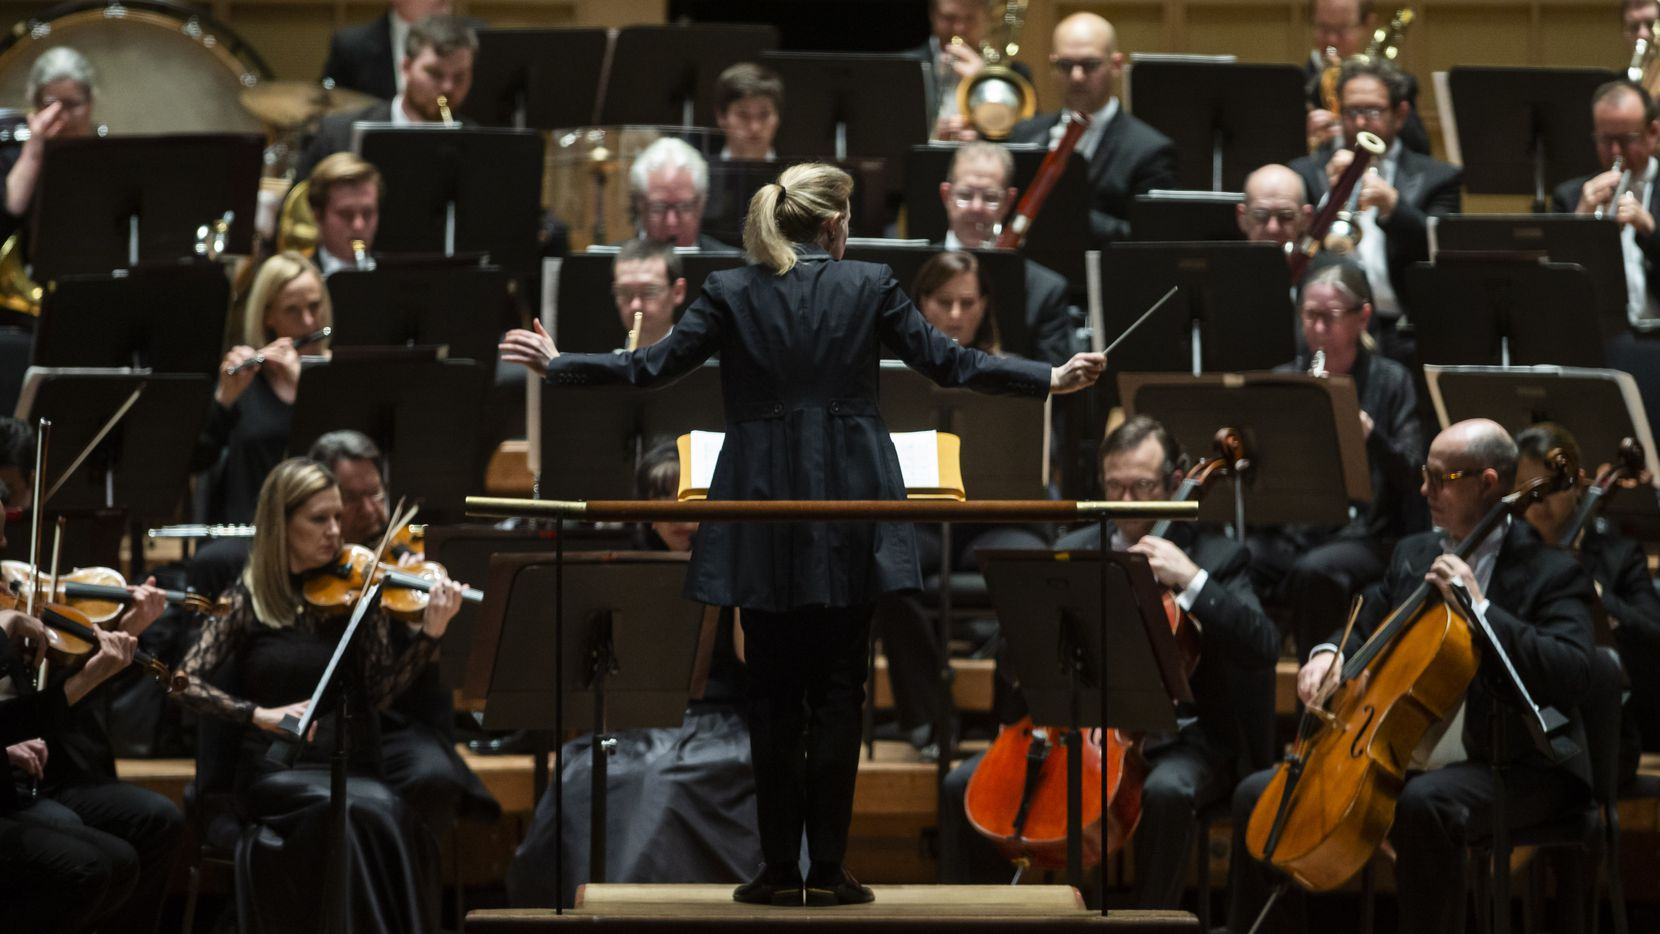 Principal guest conductor Gemma New leads the Dallas Symphony Orchestra at the Meyerson Symphony Center in Dallas on Friday, March 6, 2020.